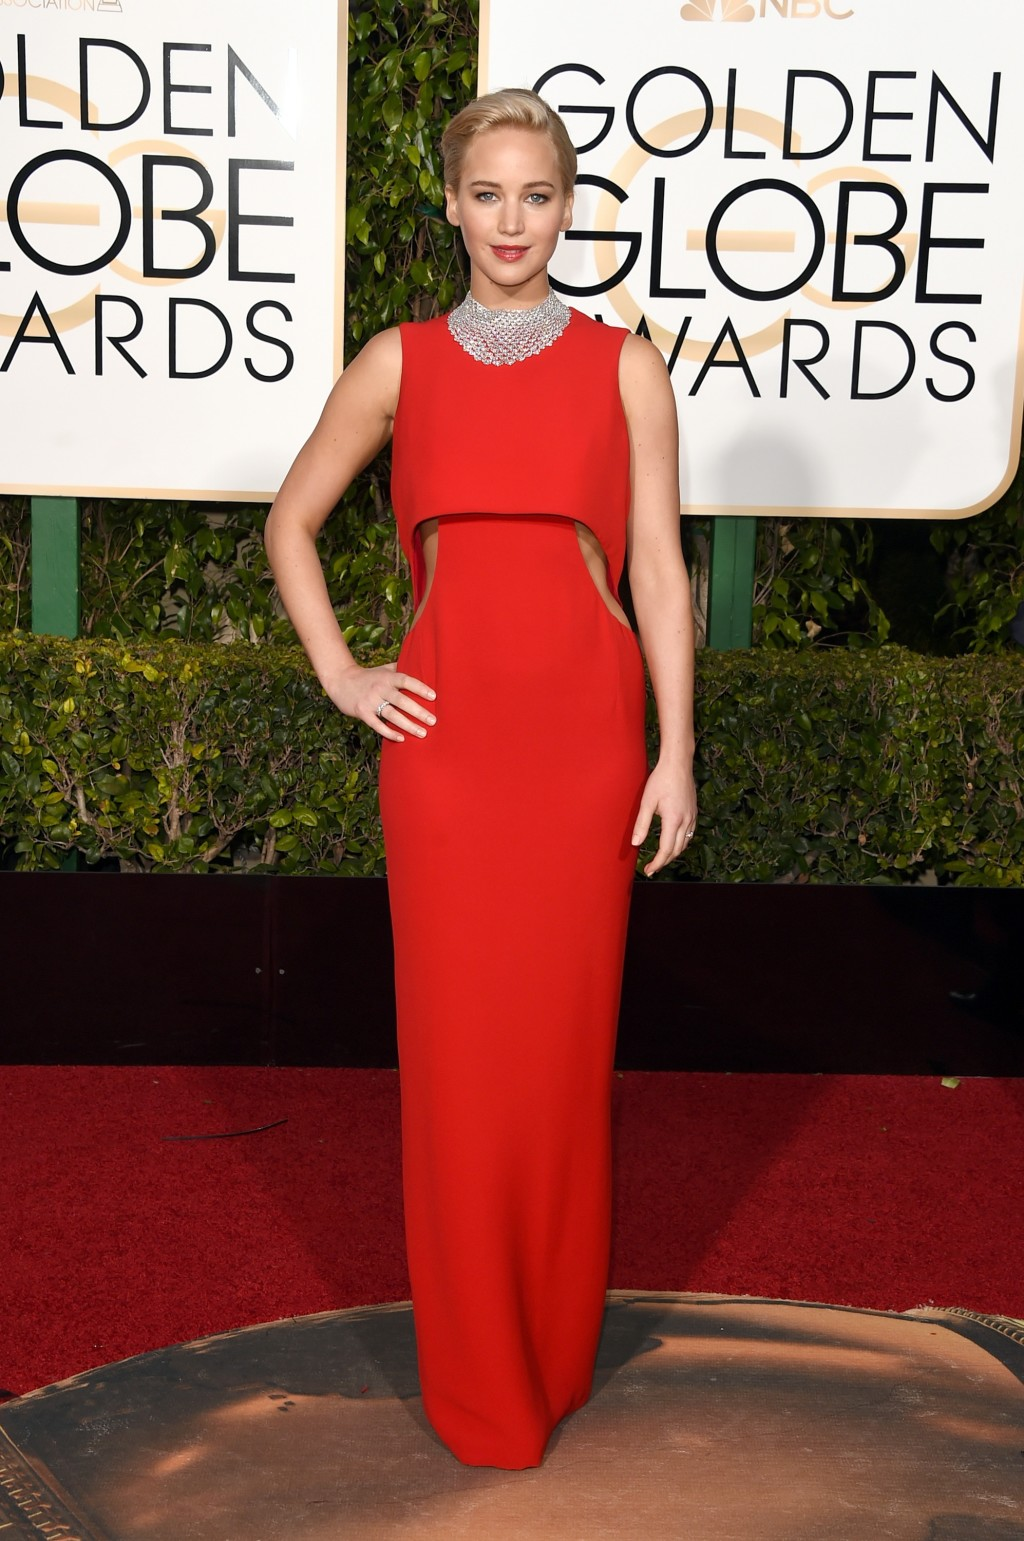 The 16 Best Looks from the 2016 Golden Globe Awards